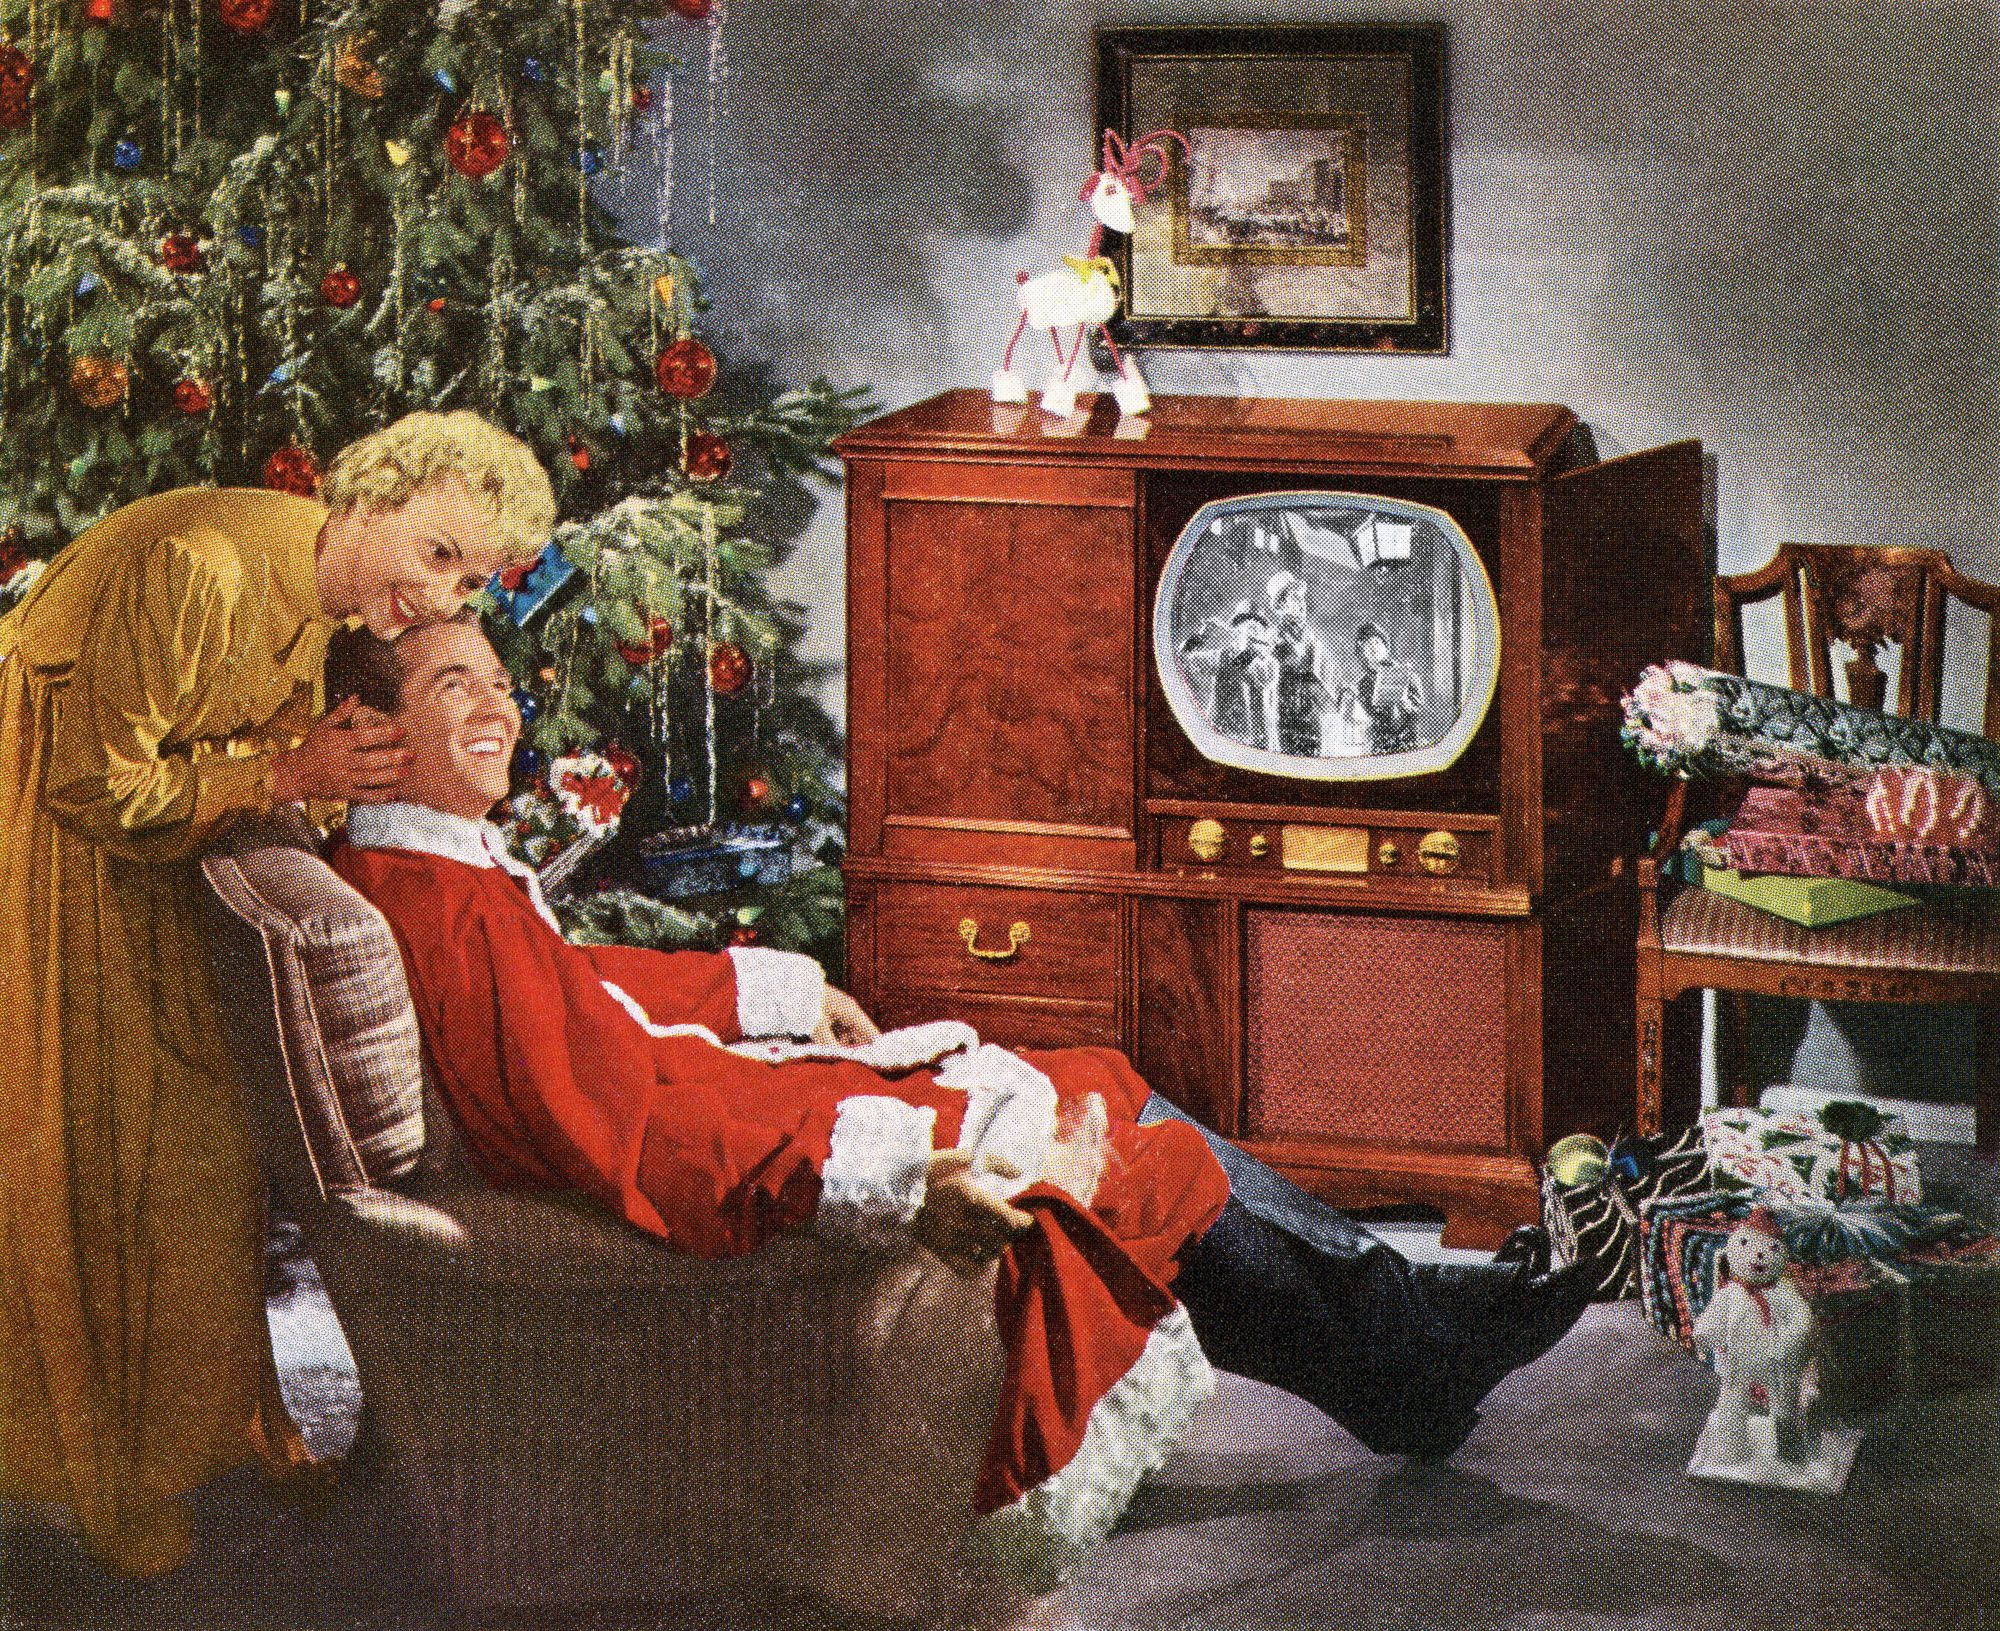 The 5 Best Christmas Episodes to Watch on Netflix - Southern Living